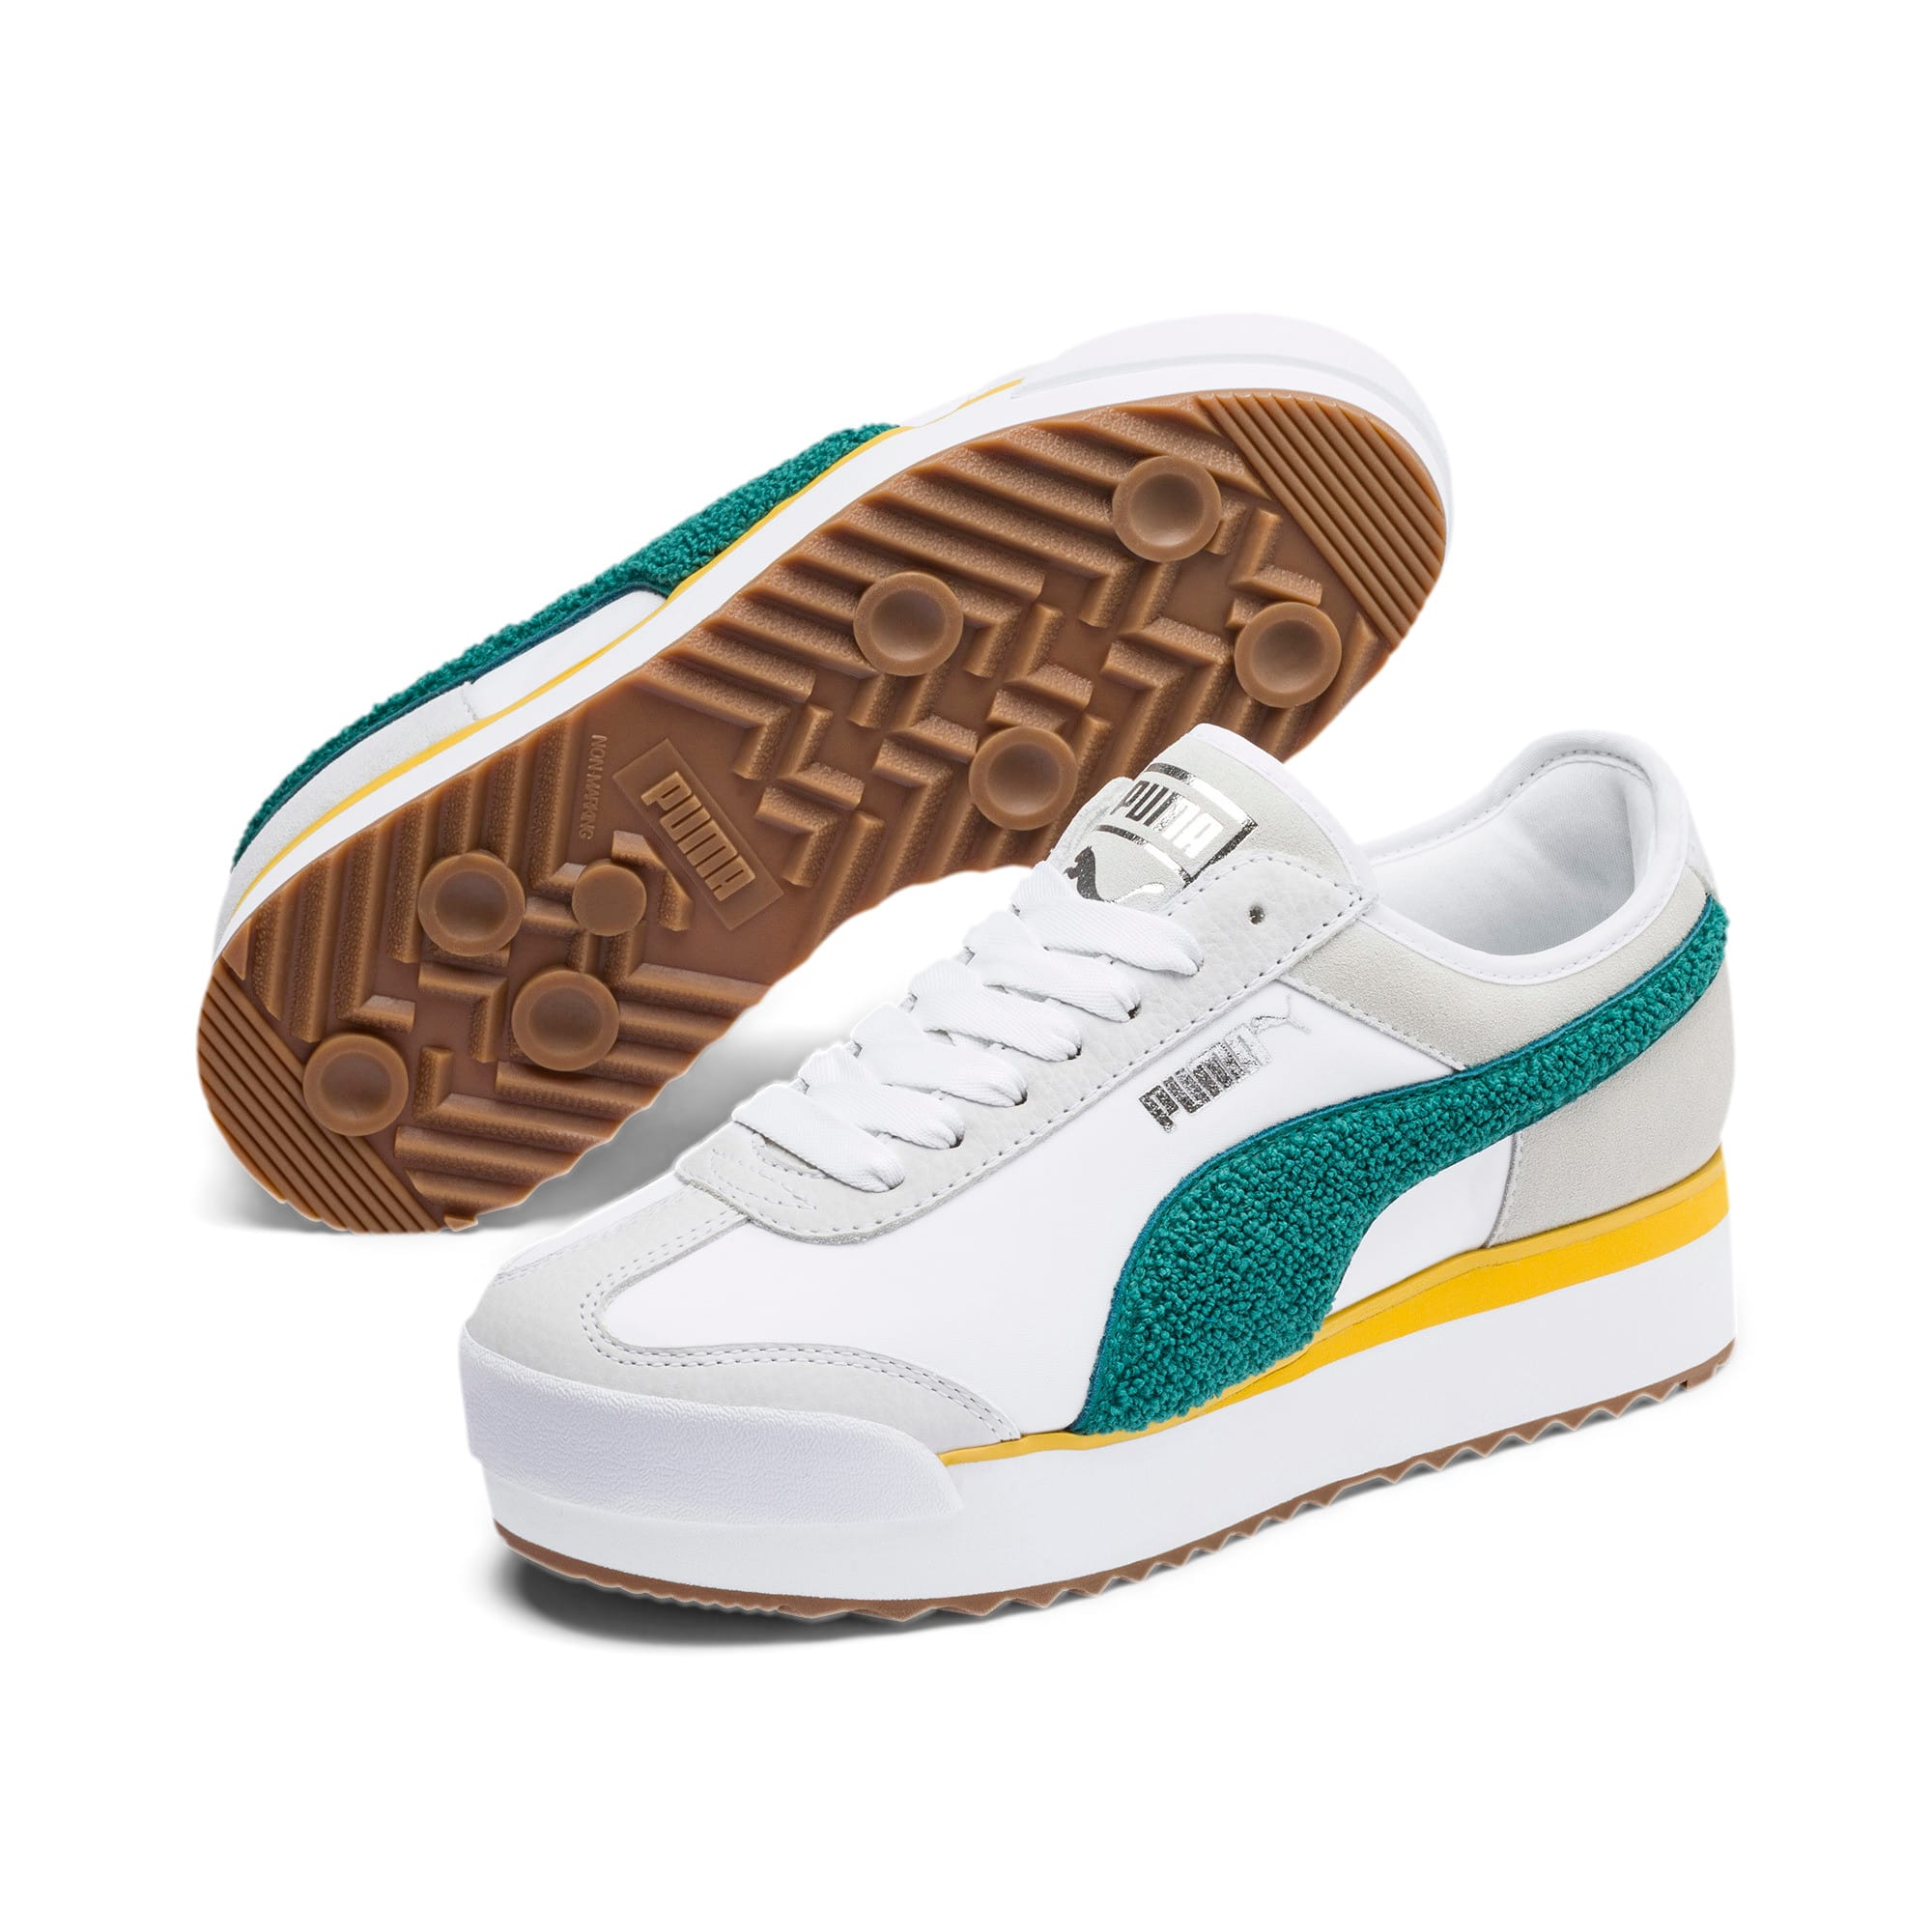 Thumbnail 3 of Roma Amor Heritage Women's Sneakers, Puma White-Teal Green, medium